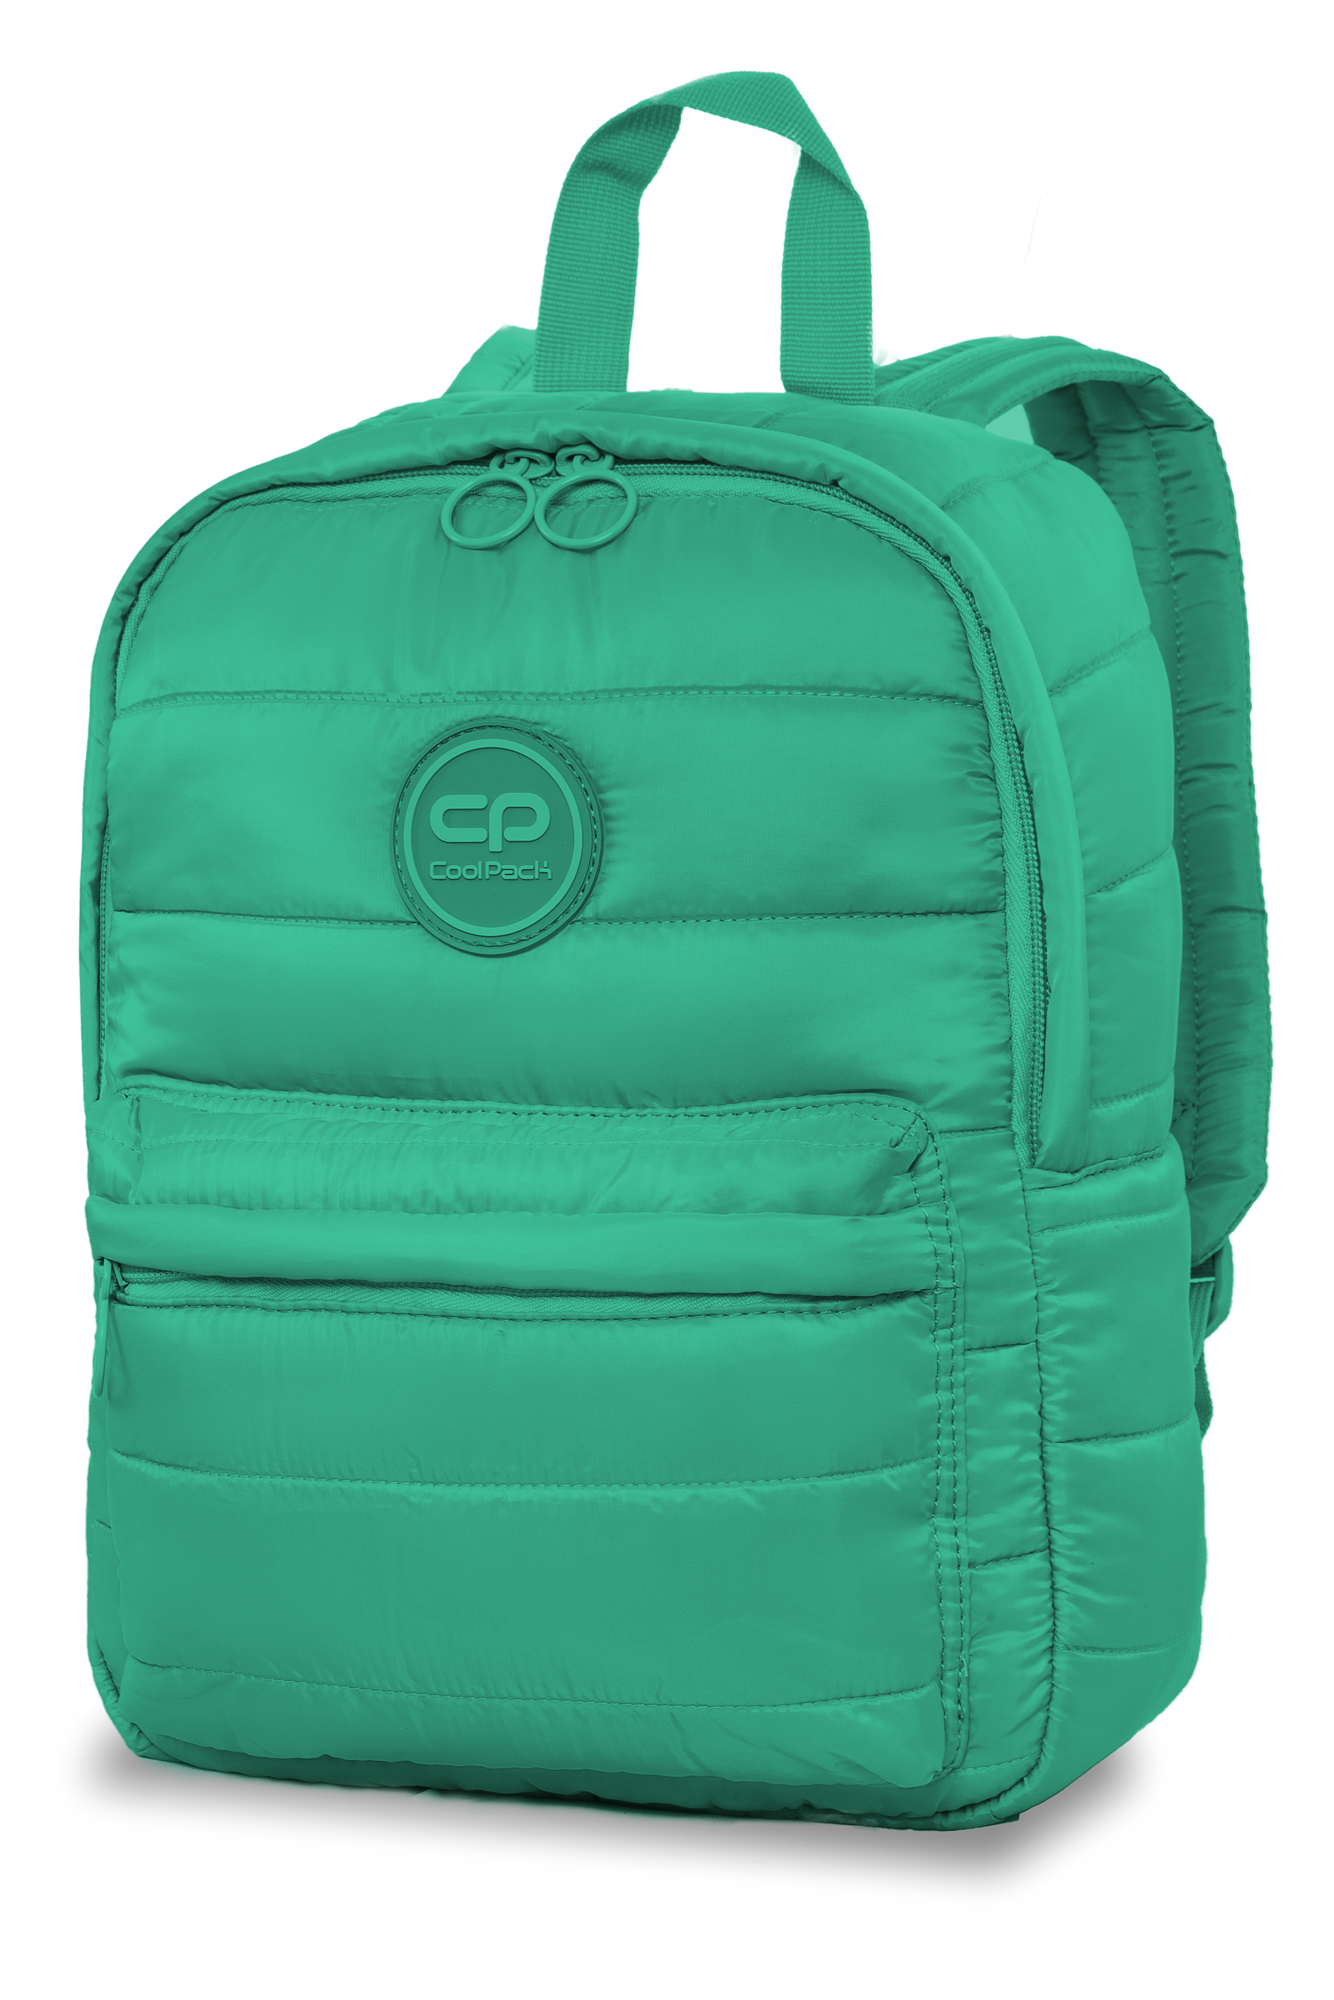 Coolpack - abby - youth backpack - green